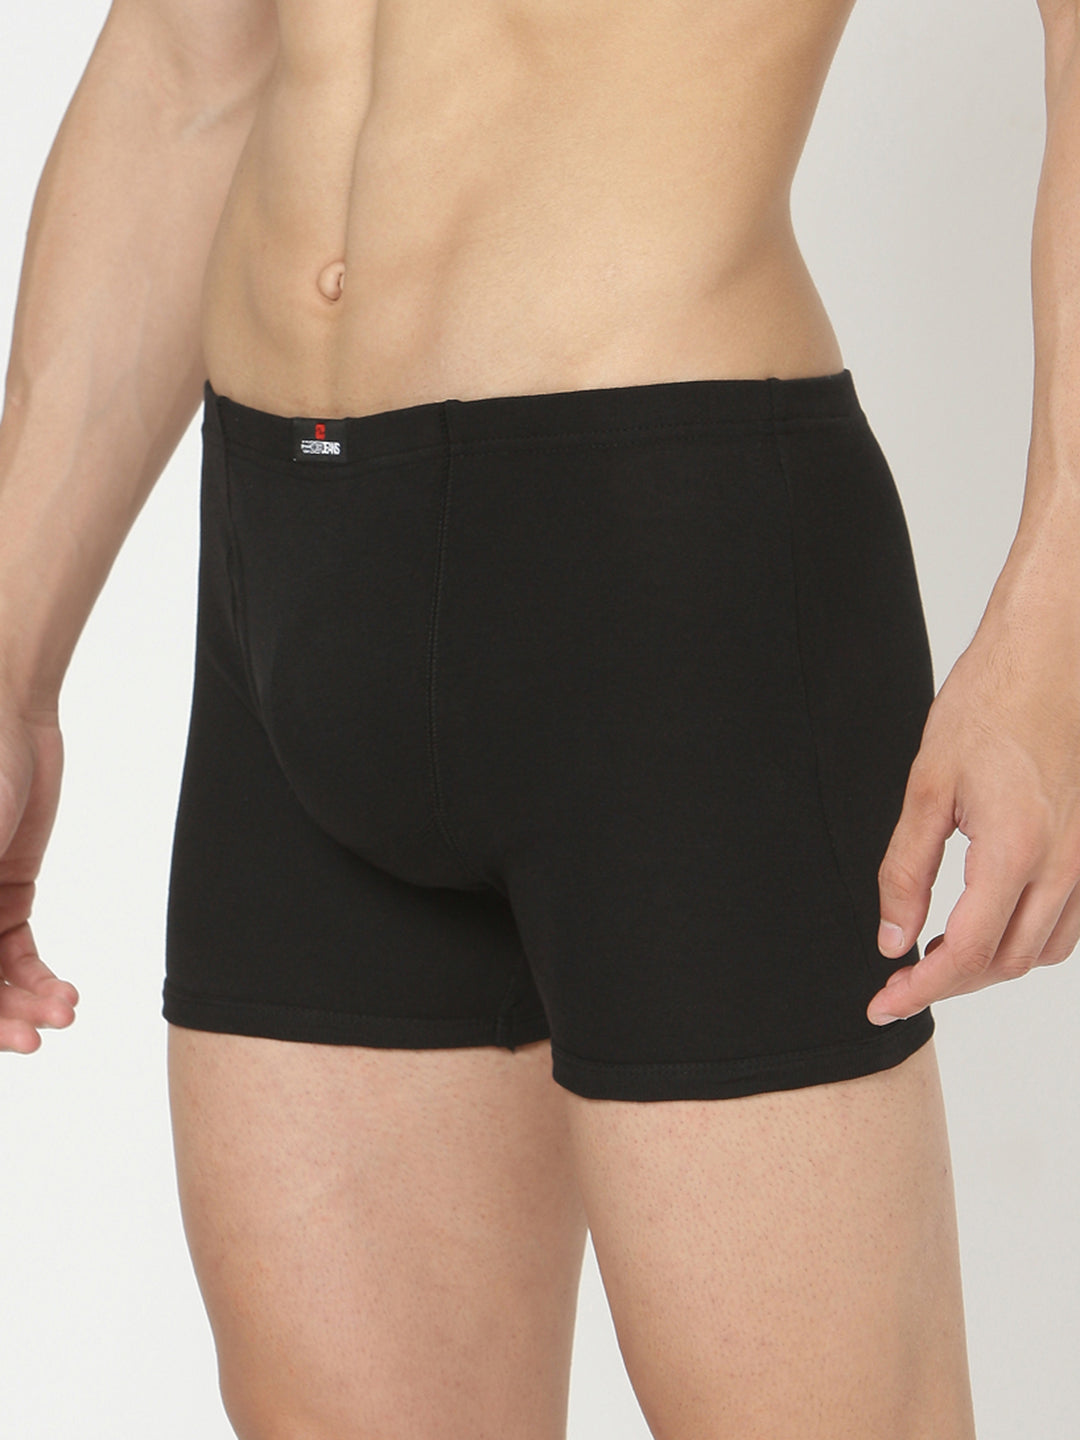 Underjeans Black Cotton Trunks Pack of 2